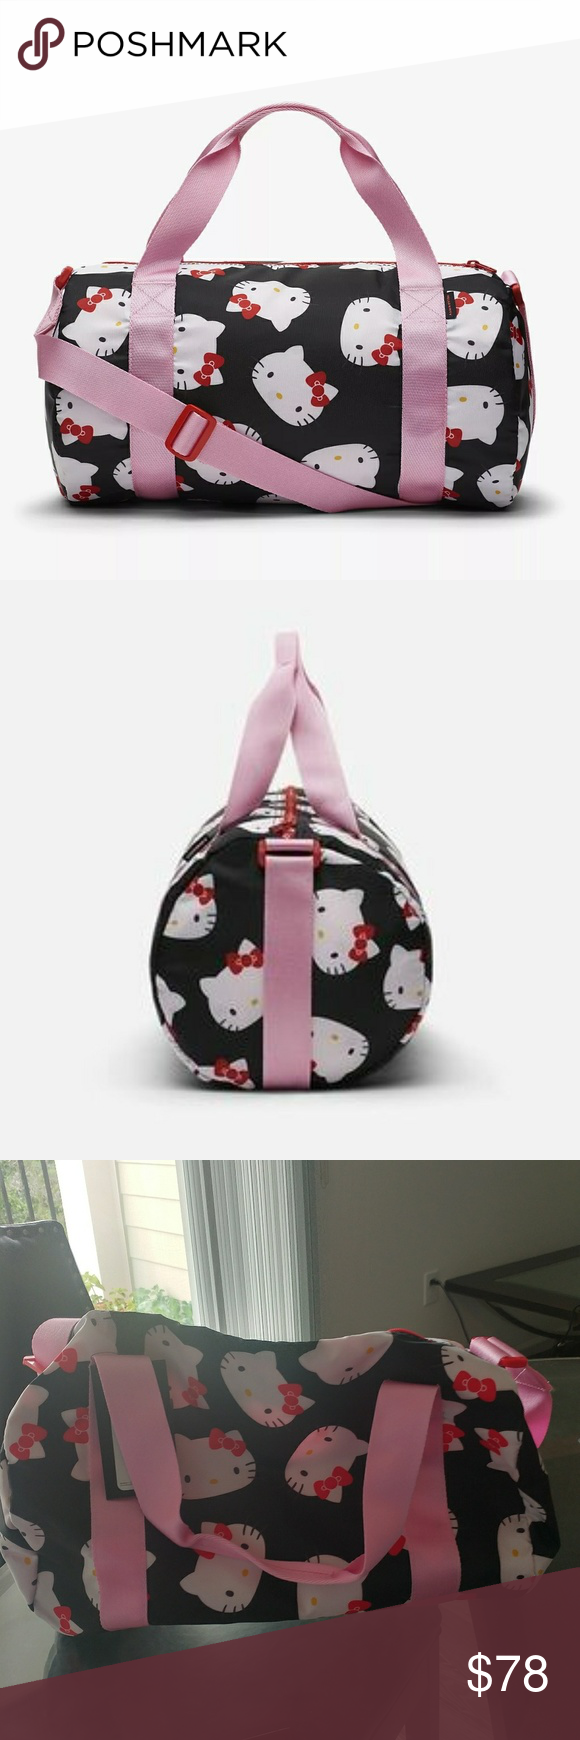 7cf030636 ... Bag The Converse x Hello Kitty mini duffel bag is printed with a one of  the world's most recognizable icon. All over Hello Kitty print Polka dot ...